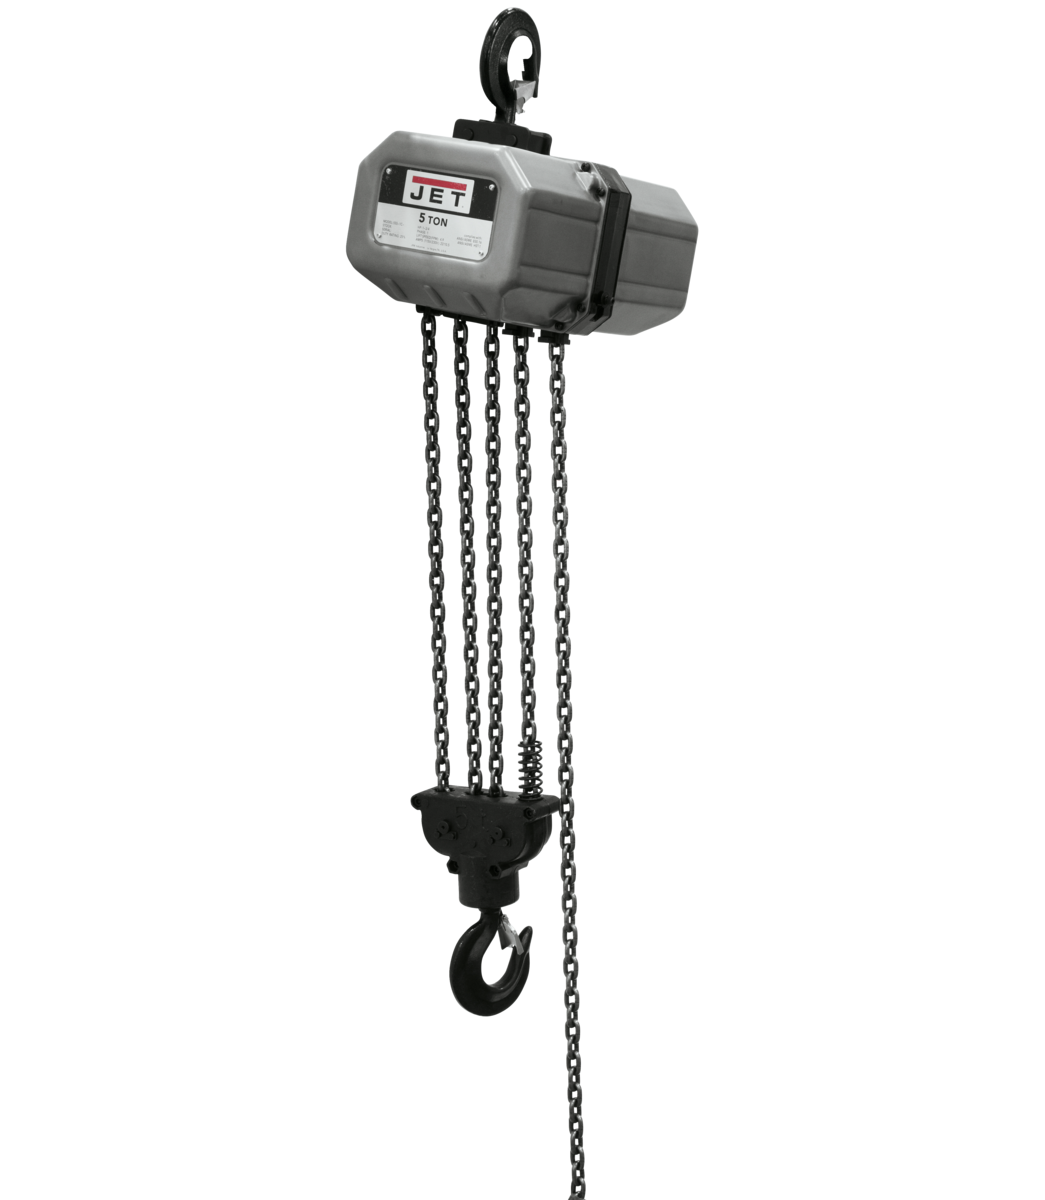 5SS-1C-10, 5-Ton Electric Chain Hoist 1-Phase 10' Lift